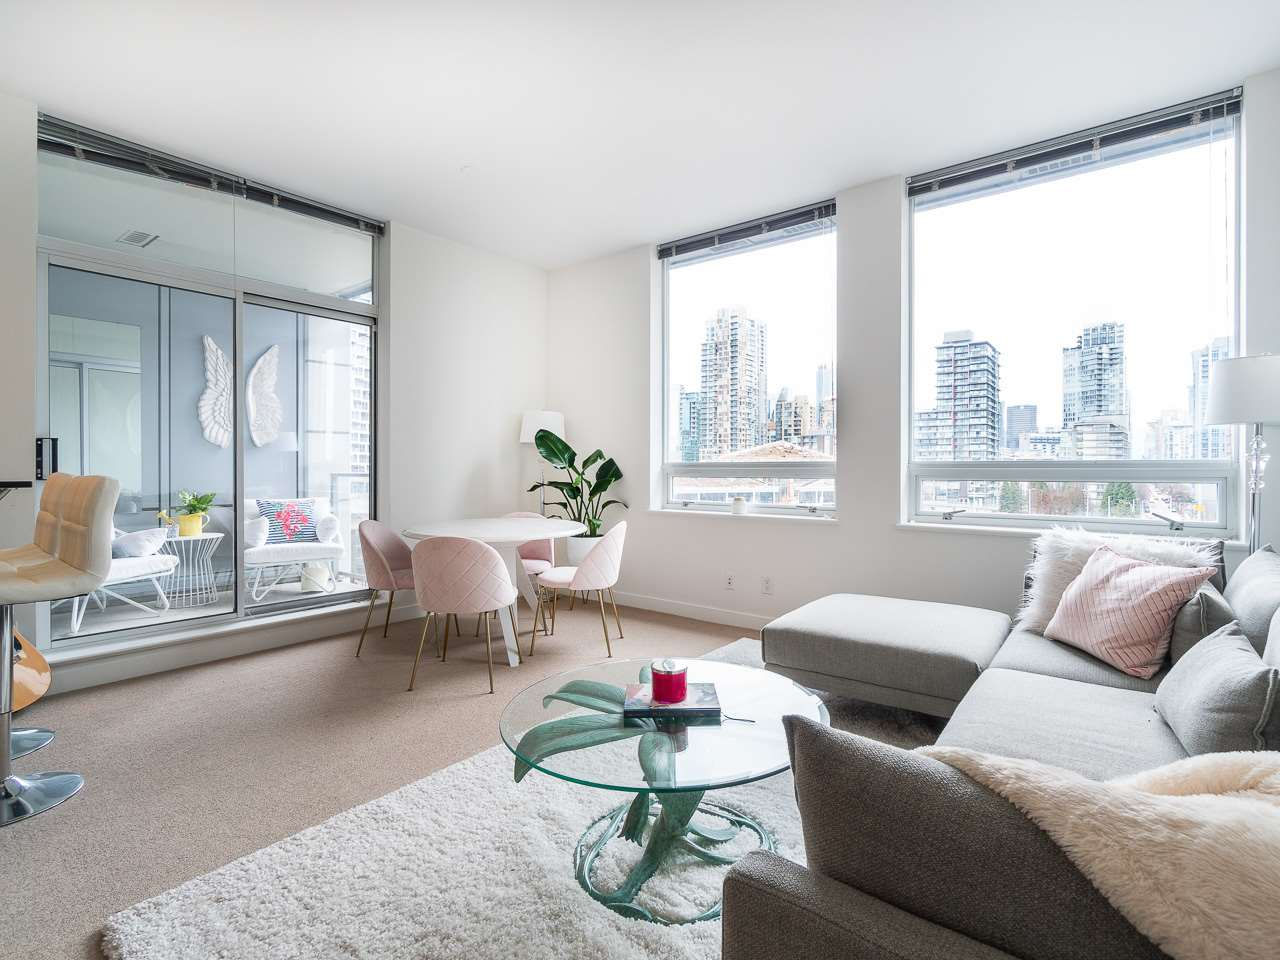 1106 638 BEACH CRESCENT - Yaletown Apartment/Condo for sale, 1 Bedroom (R2499986) - #1